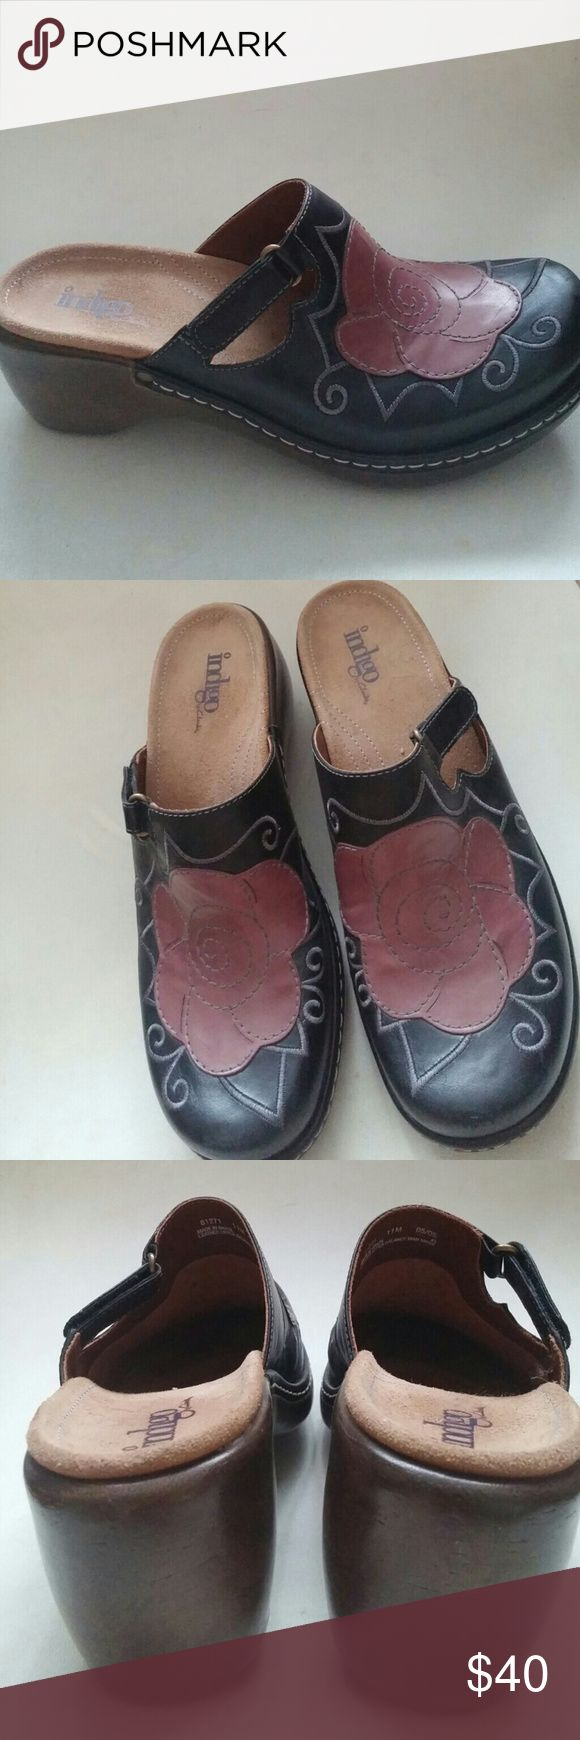 Size 11m (INDIGO) black clog floral shoes These are adjustable with a velcro strap to your comfort level.  They were also never worn but instead came out of a shoe store that closed I and maybe a few people tried them on with socks great deal for the right girl indigo Shoes Mules & Clogs